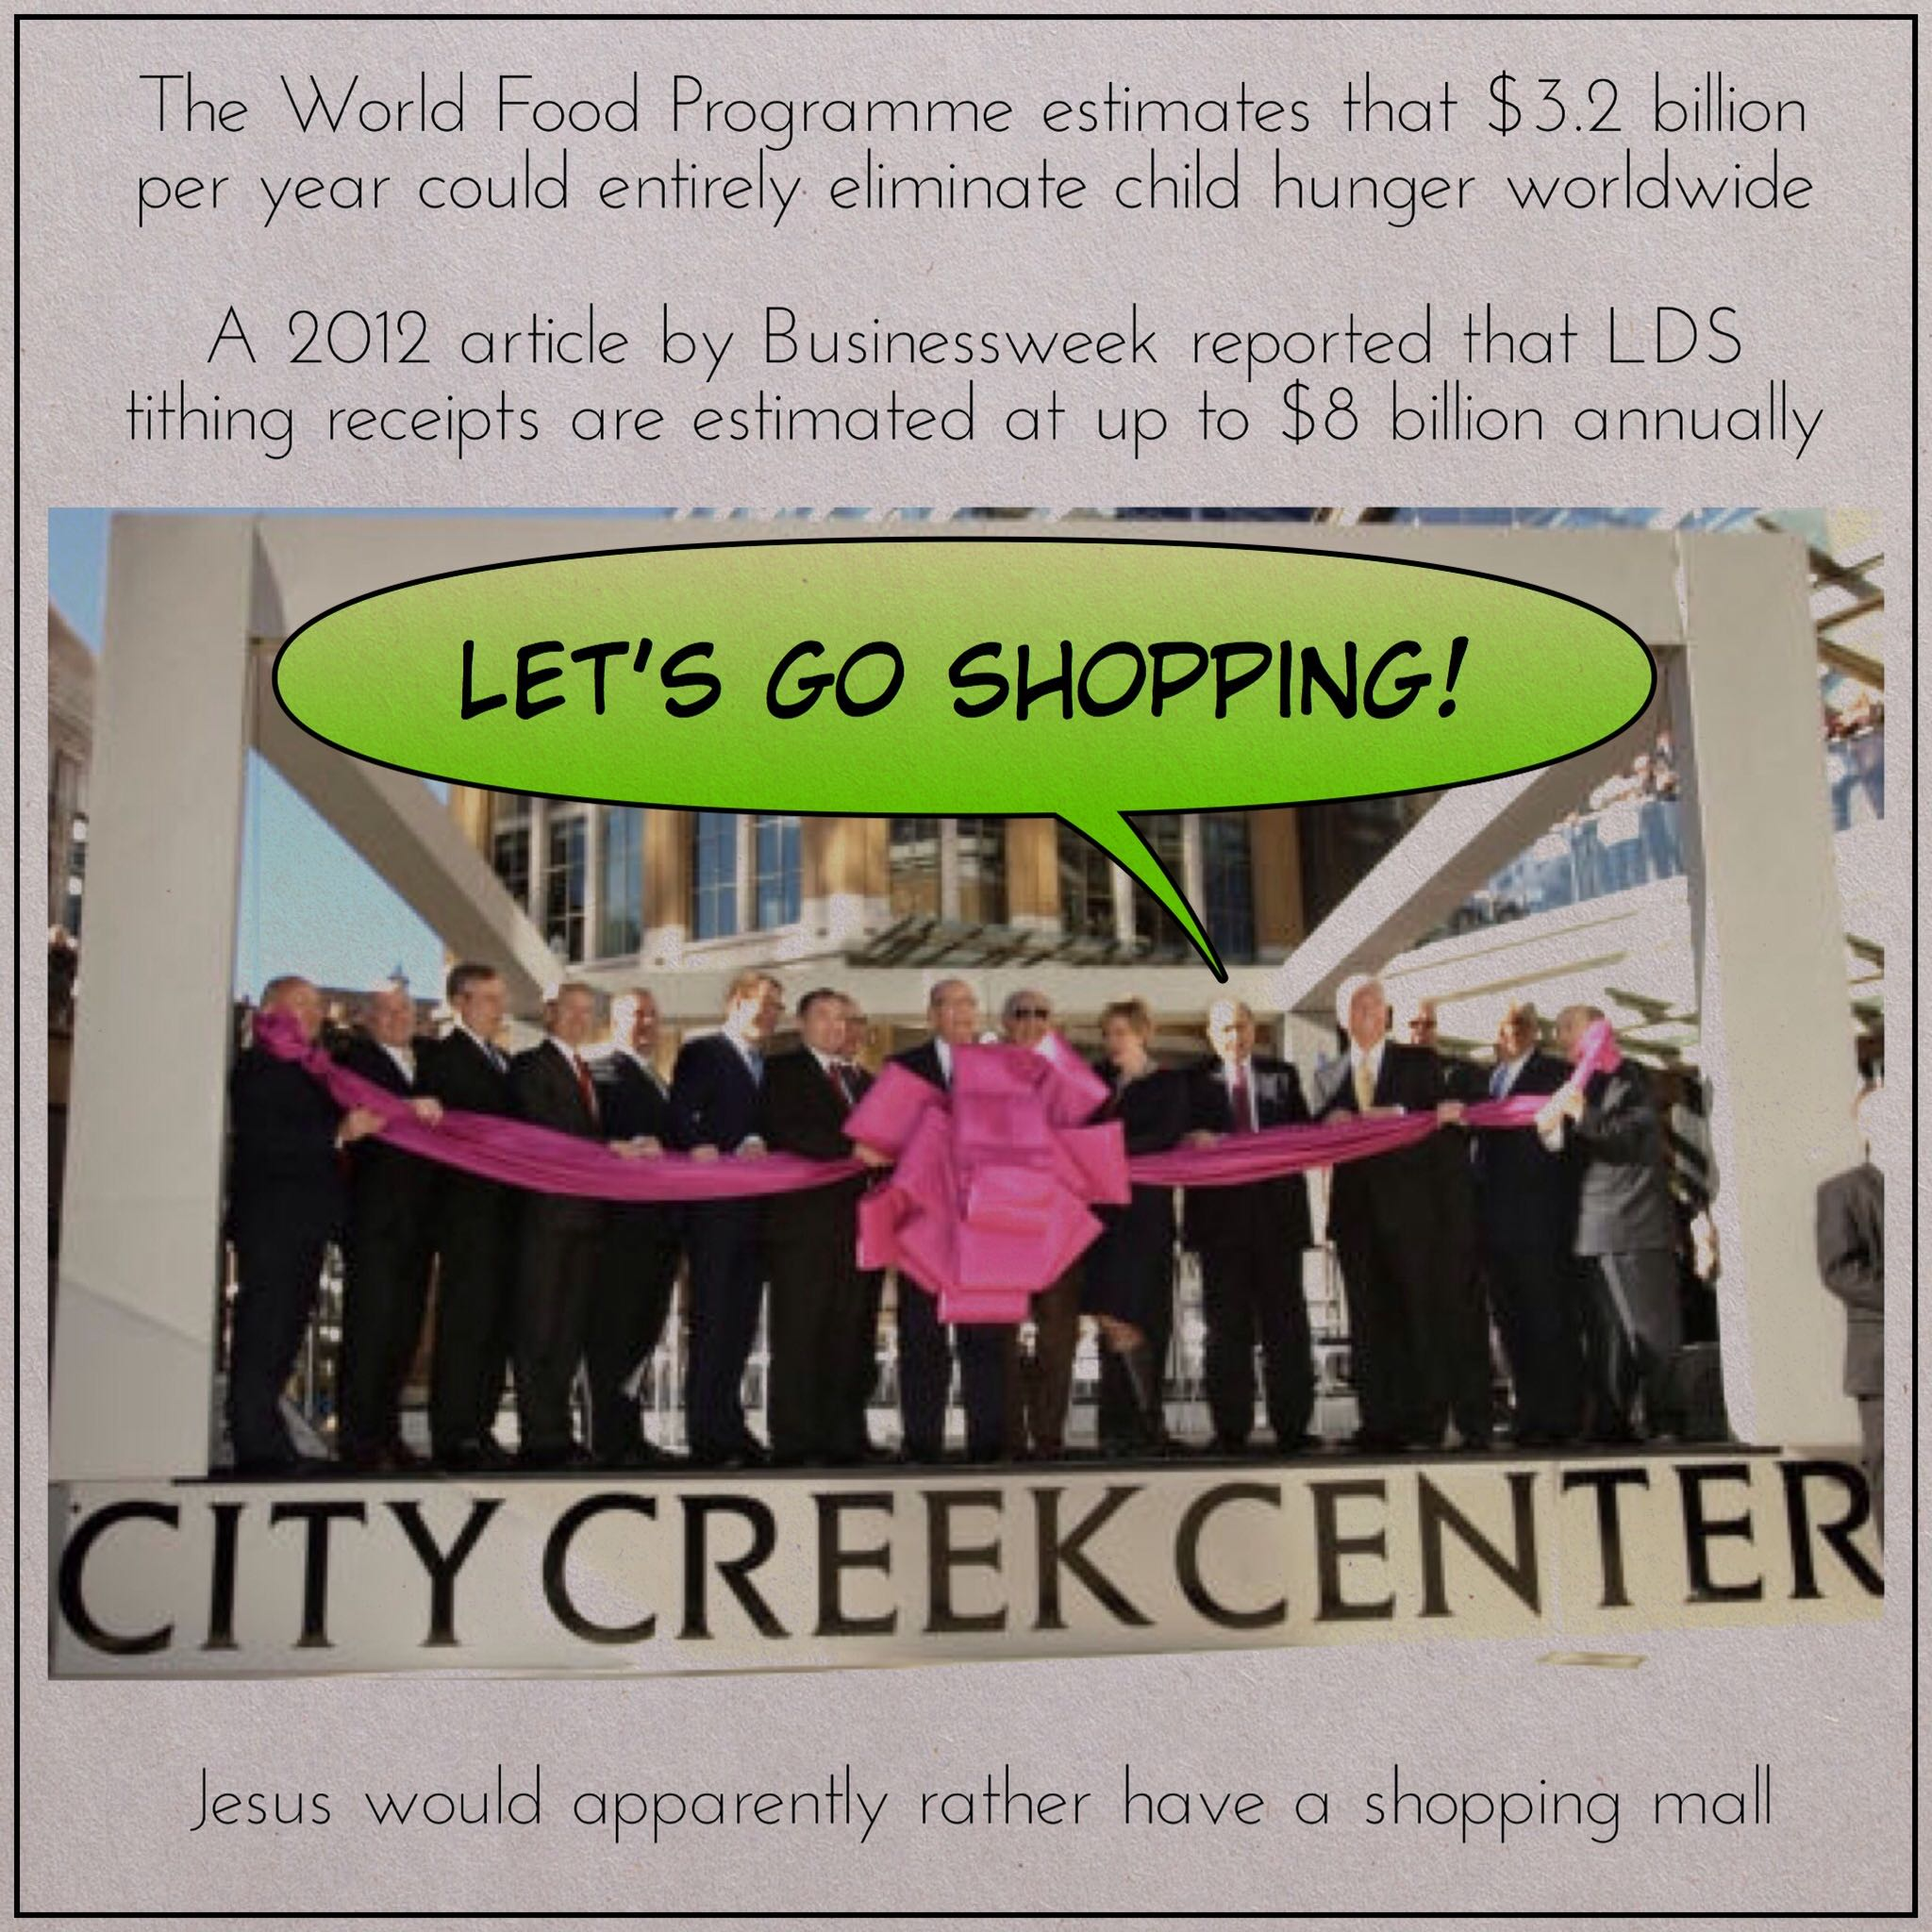 jesus would rather have a shopping mall